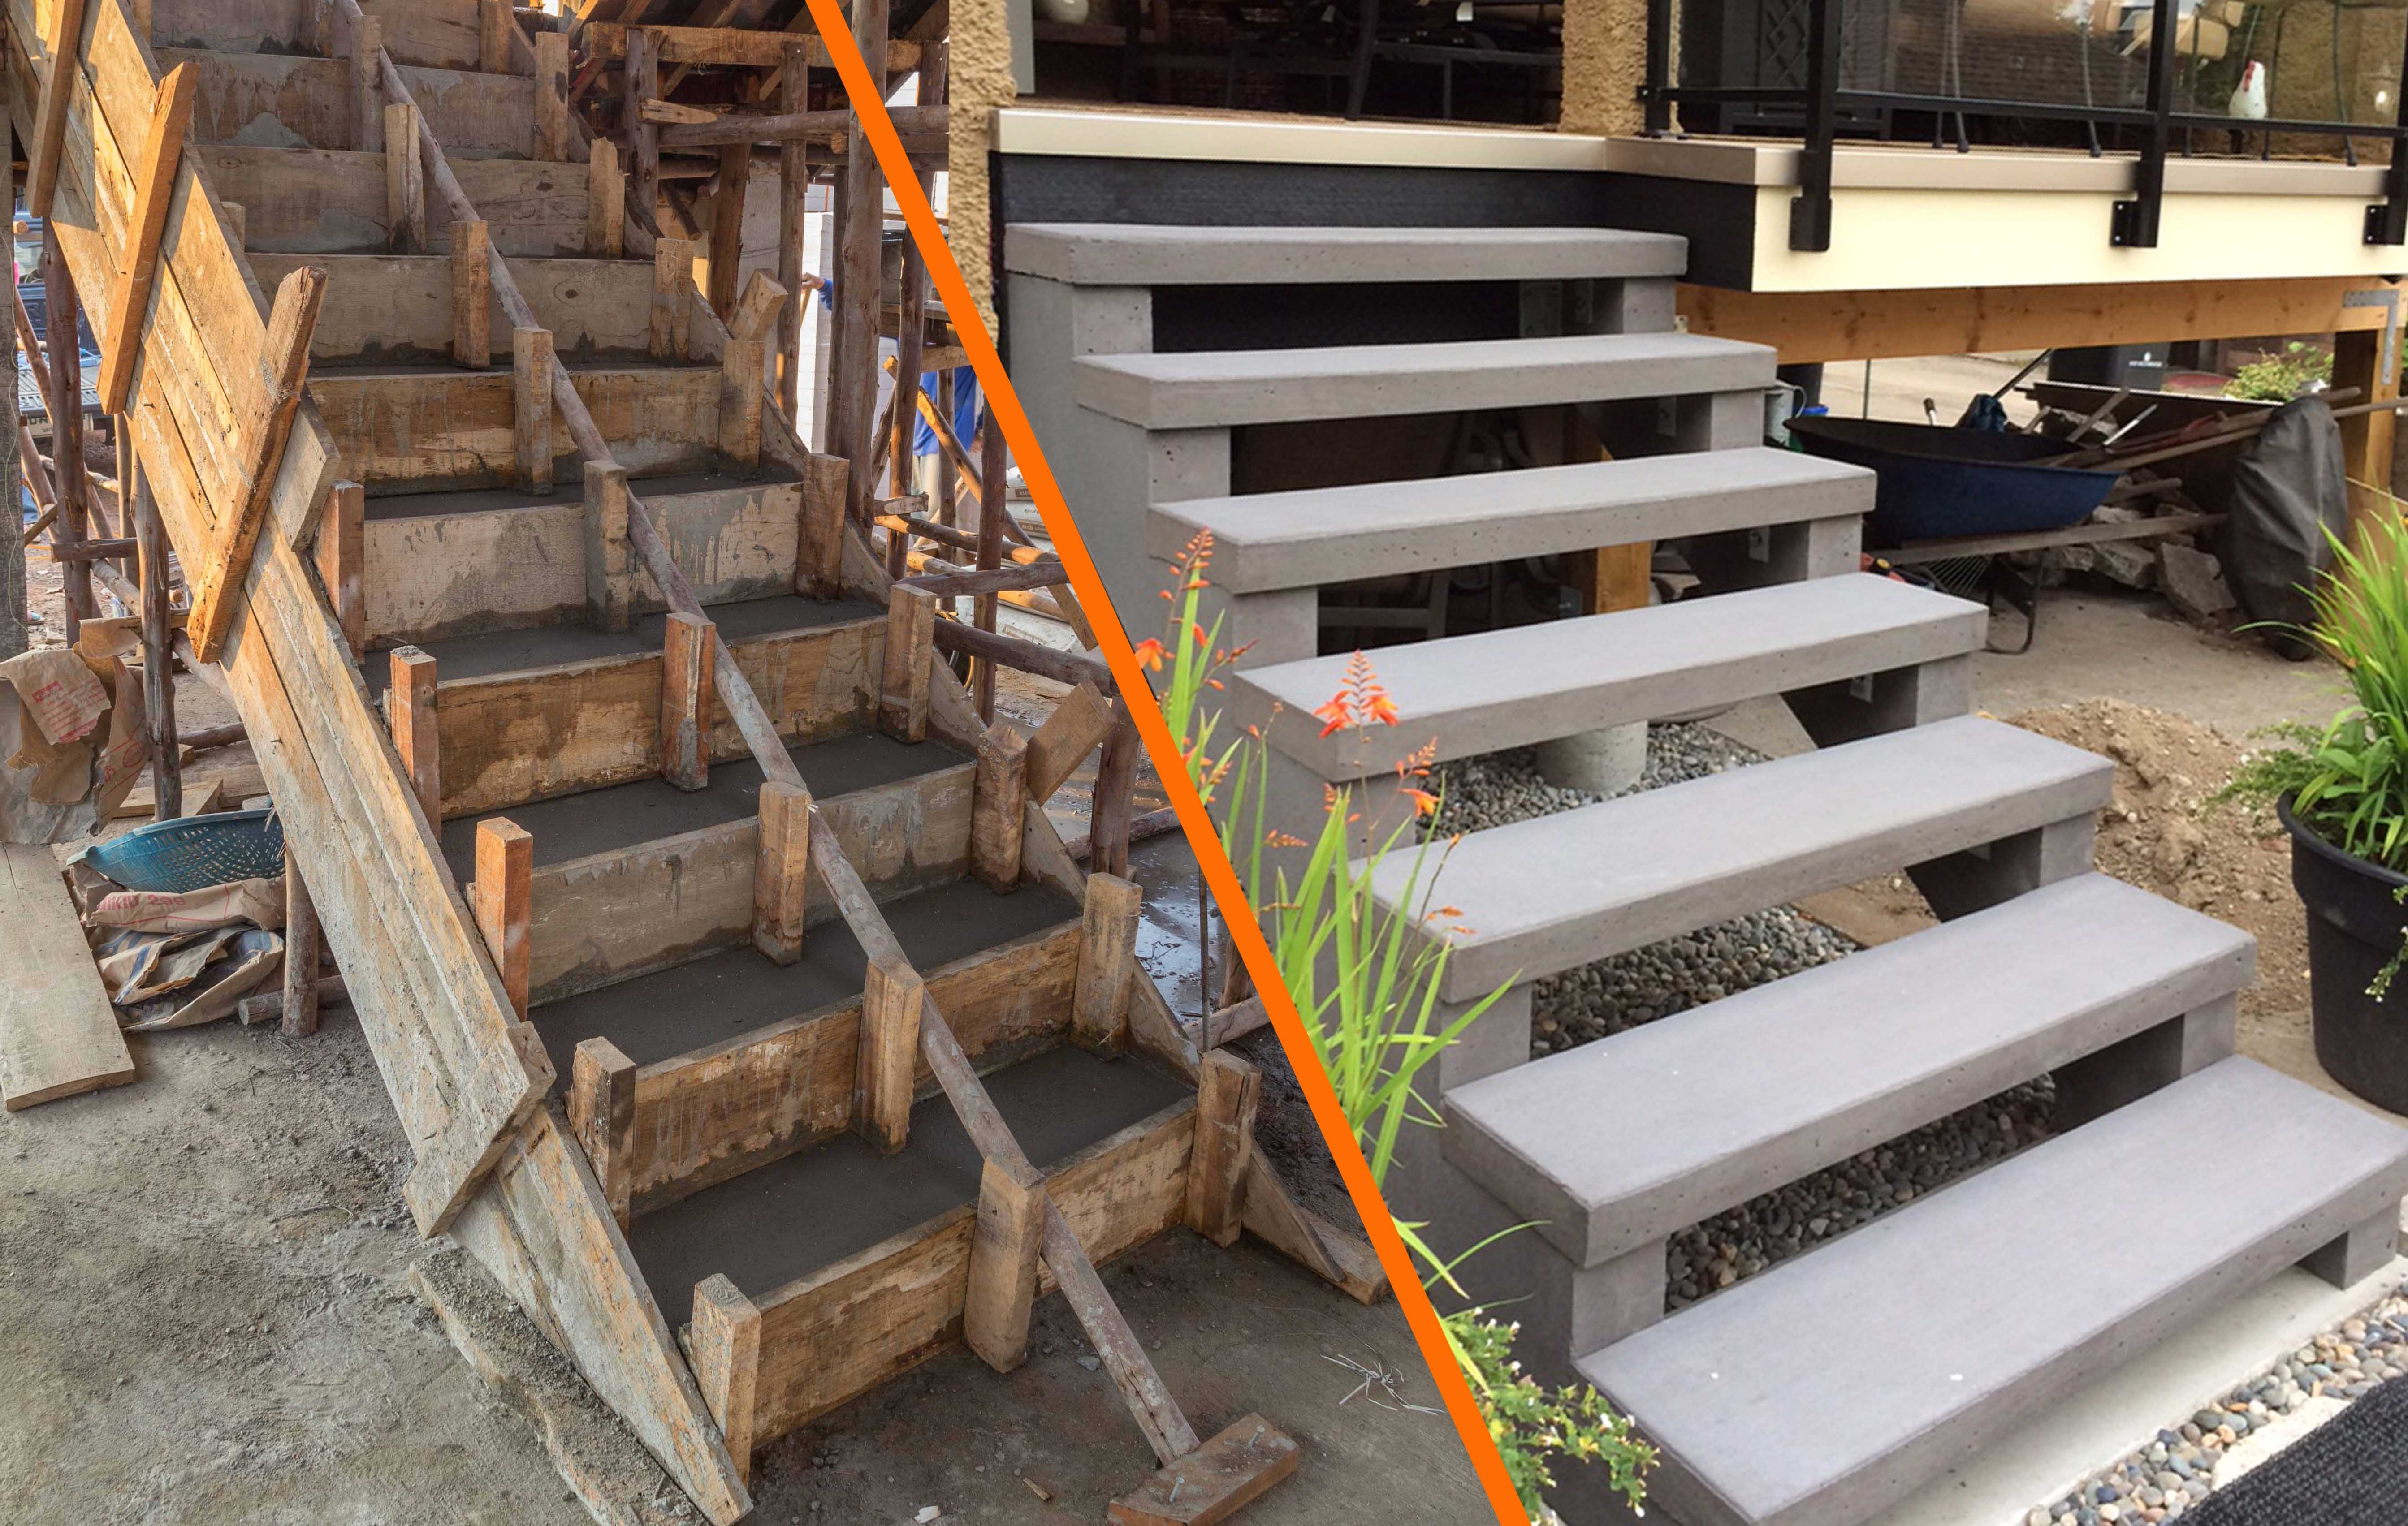 Ready Mix Concrete Steps Vs Precast Concrete Stairs Sanderson   Concrete And Wood Stairs   Concrete Wall   Separated   Concrete Building Interior   Glass Balustrade   White Riser Wood